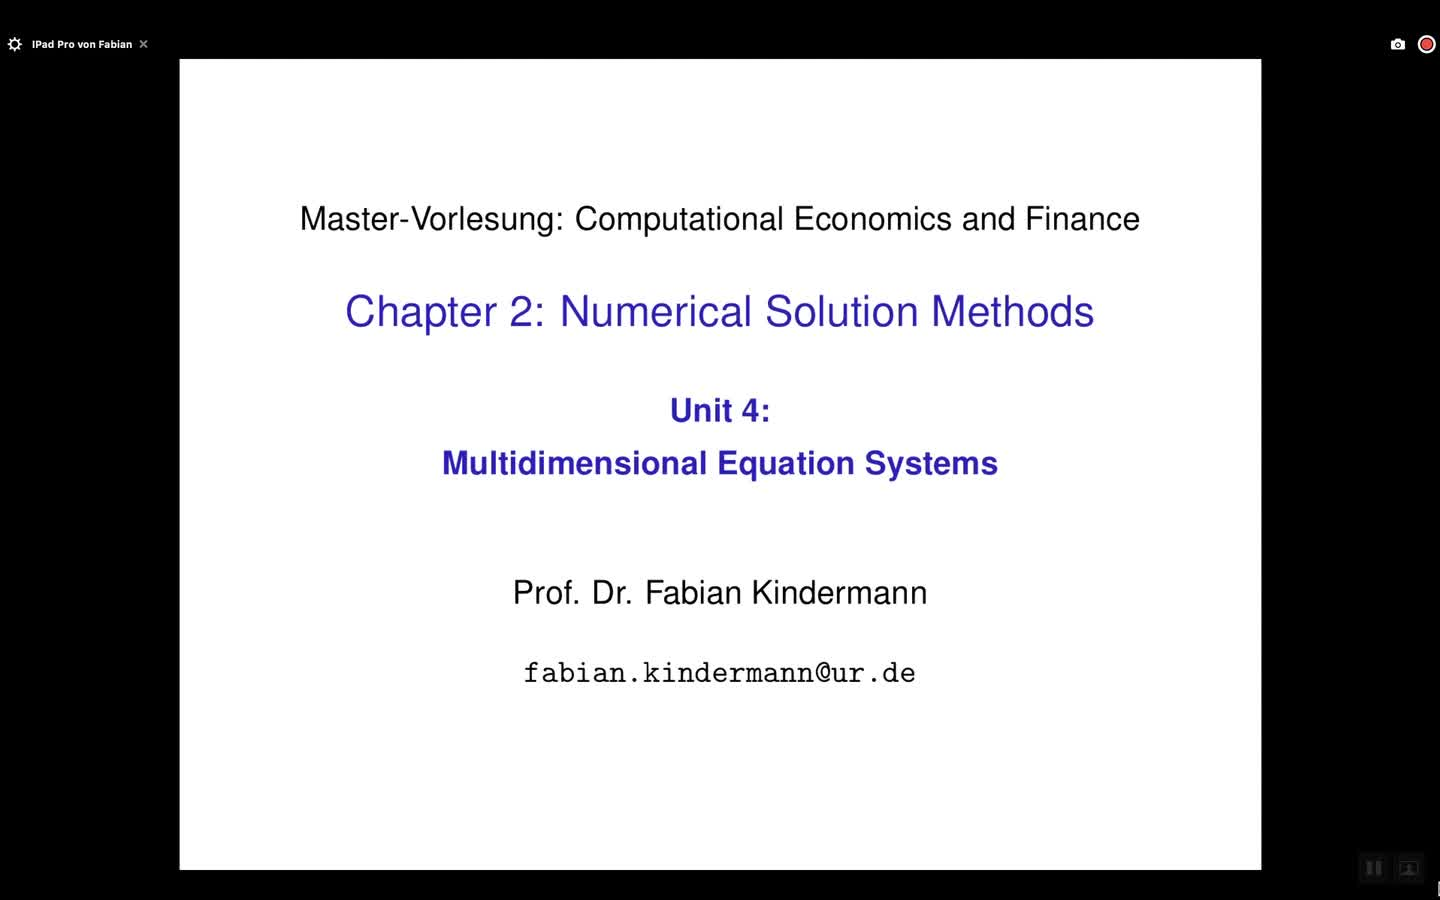 Chapter 2 - Unit 4 - Multidimensional Equation Systems